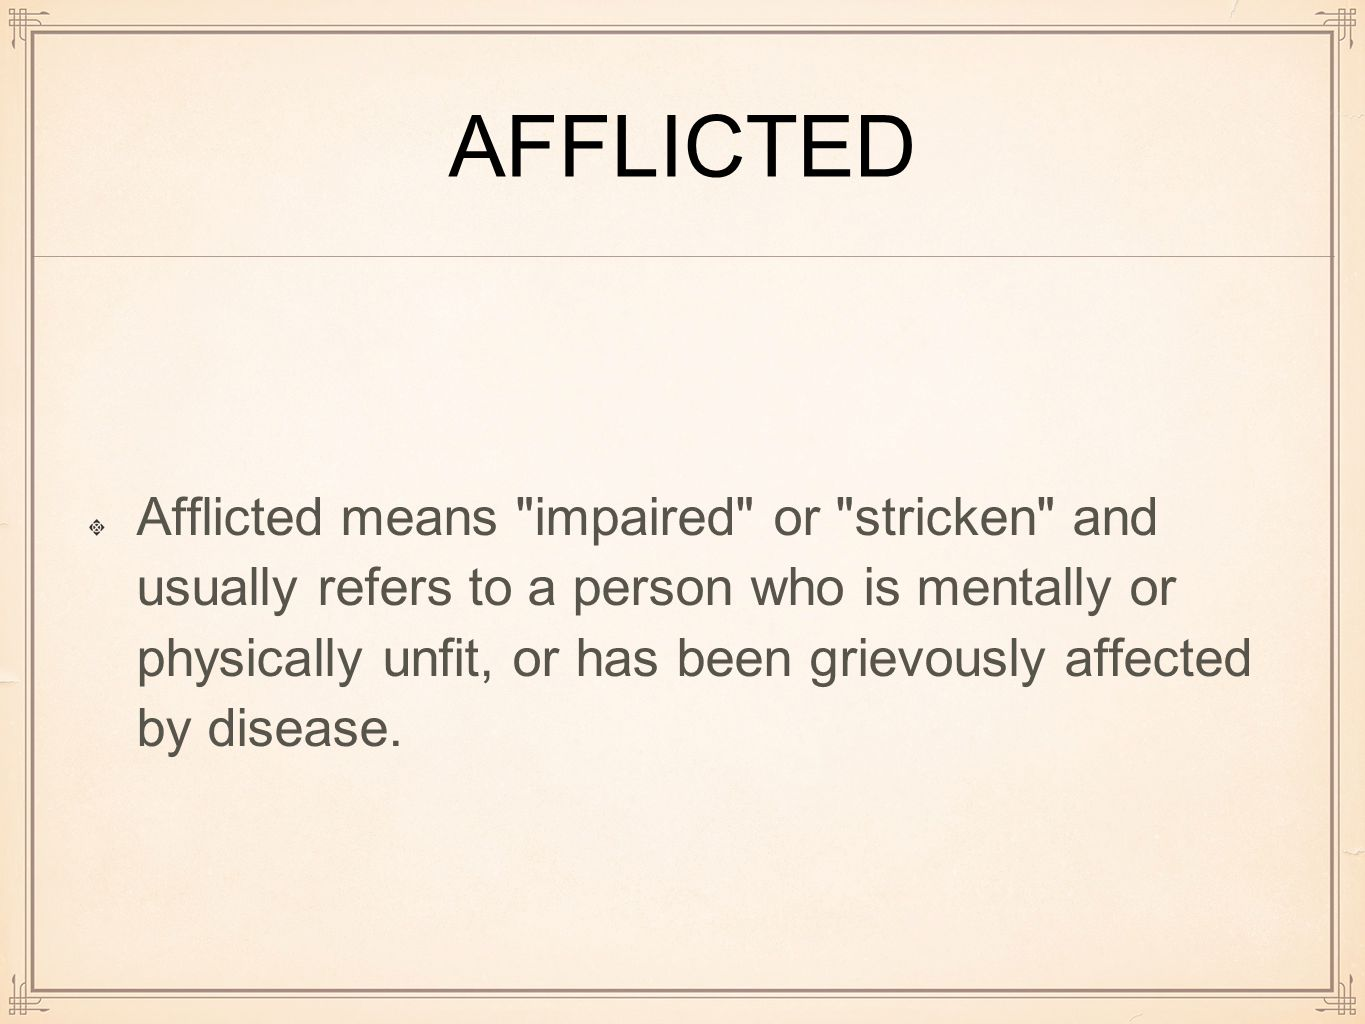 AFFLICTED Afflicted means impaired or stricken and usually refers to a person who is mentally or physically unfit, or has been grievously affected by disease.